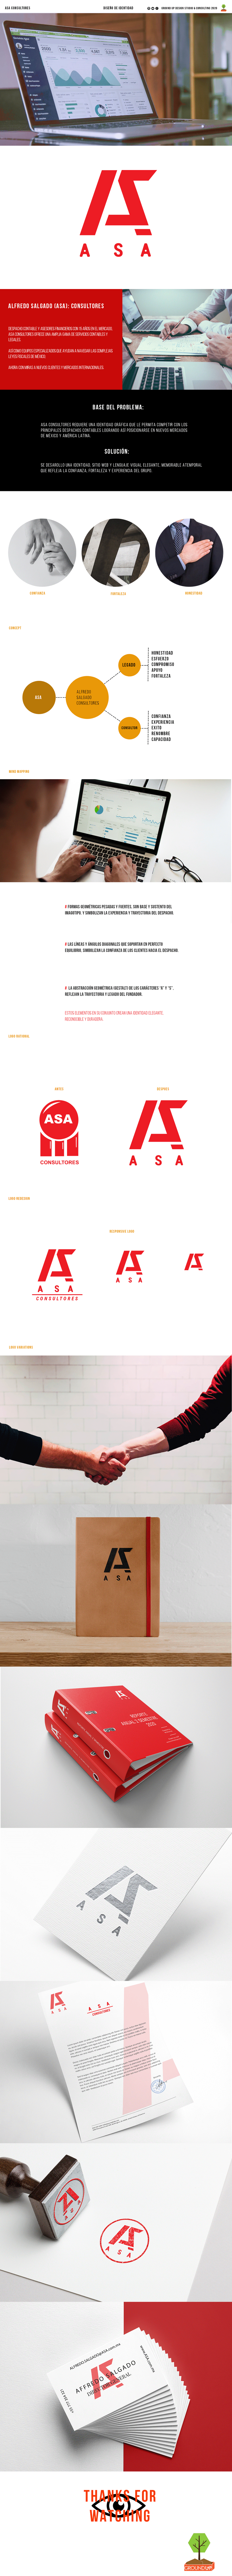 A  asa Consulting identity logo redesign